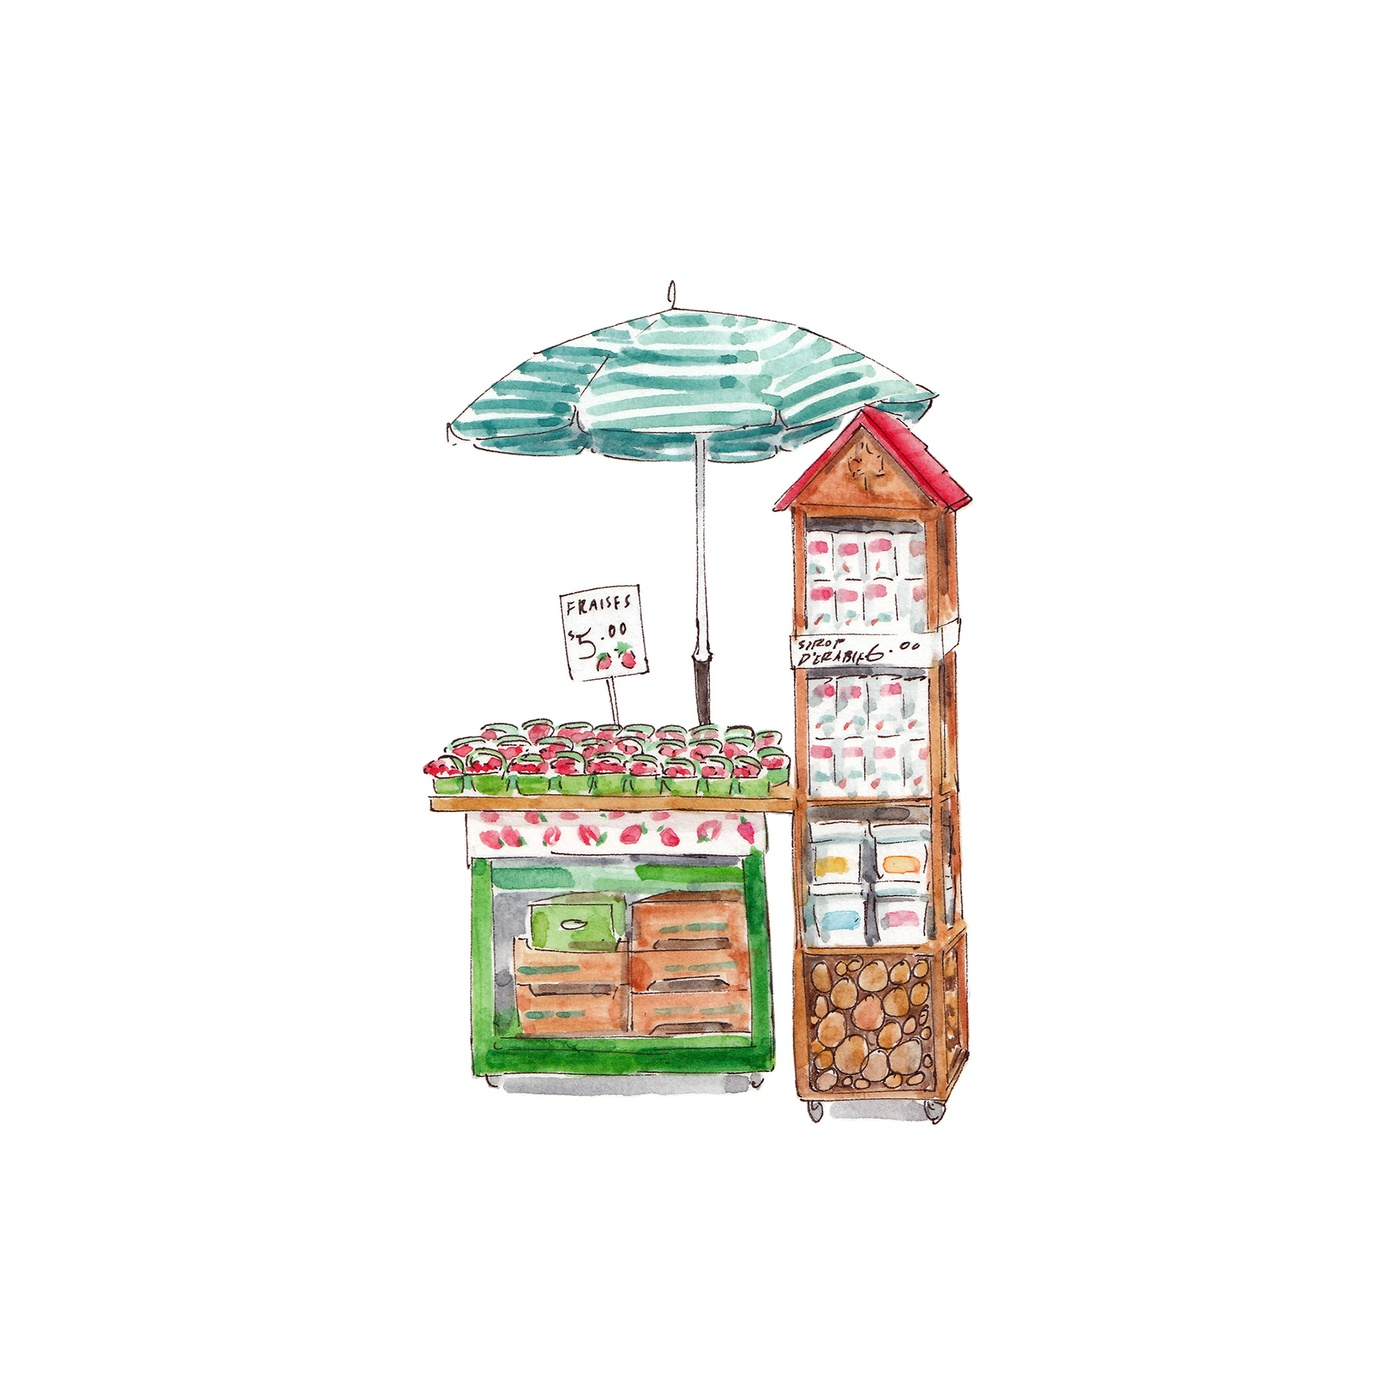 Emma Jacobs - Illustration Alimentaire